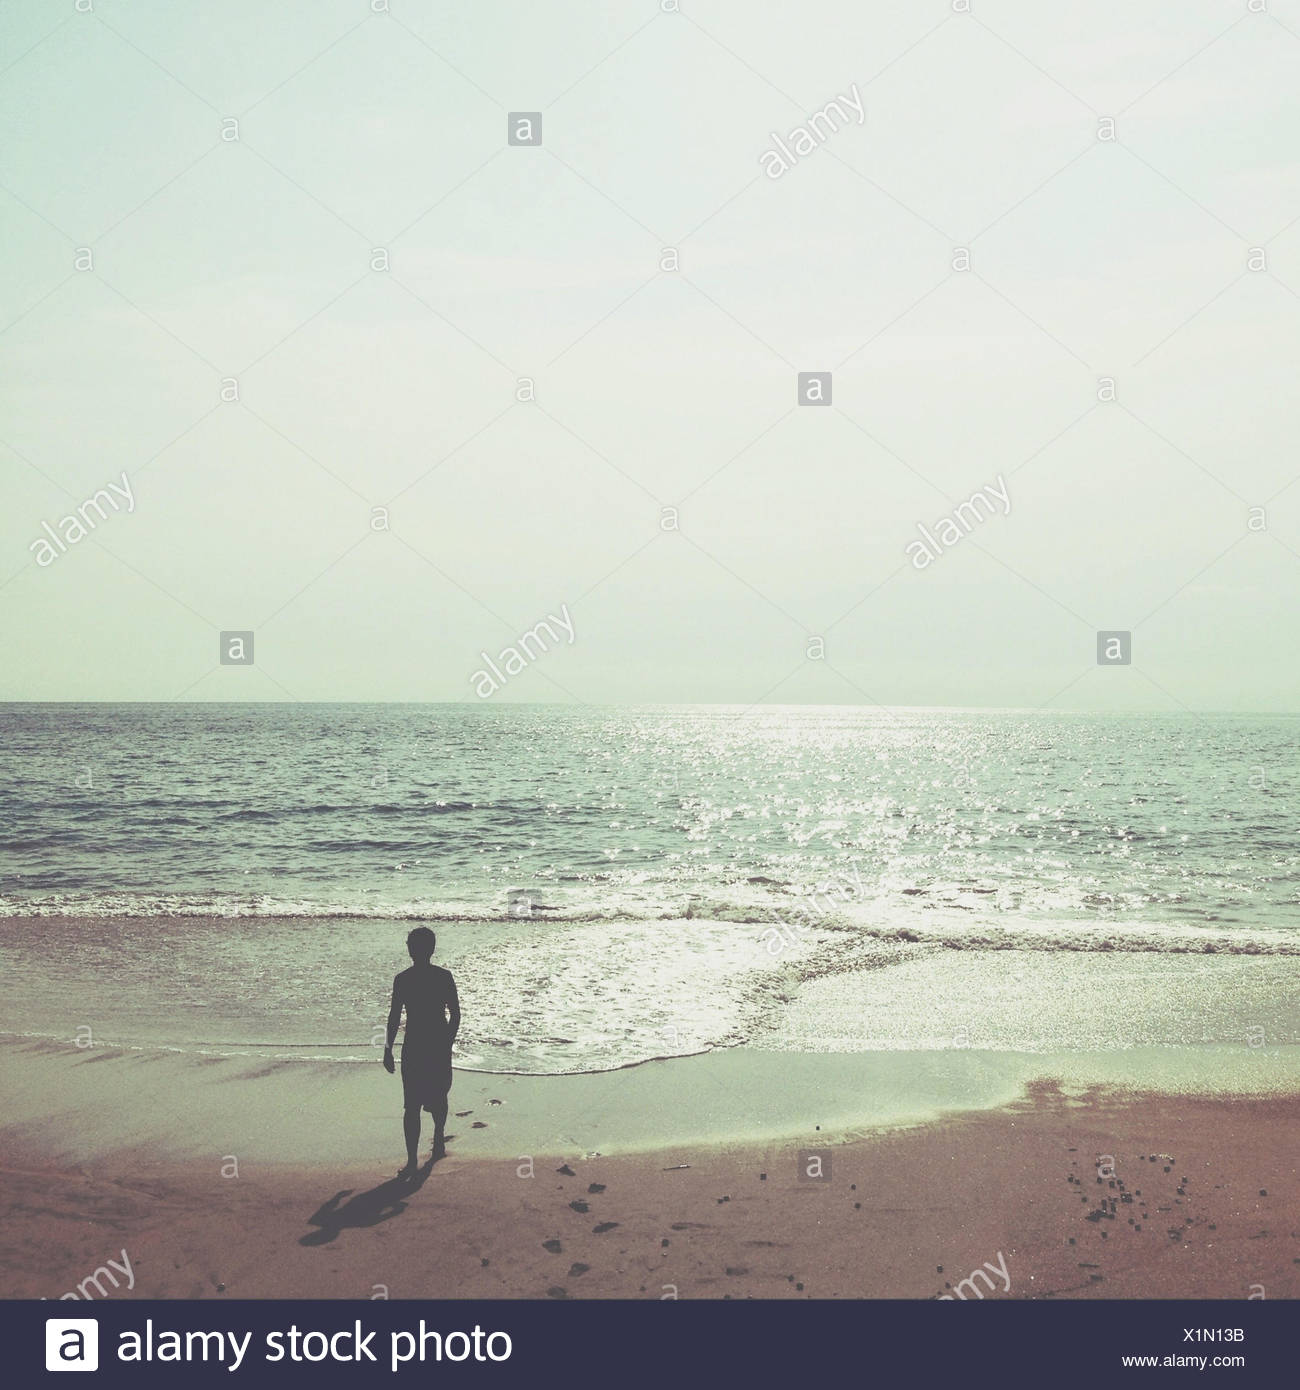 Silhouetted figure on beach walking away from sea - Stock Image